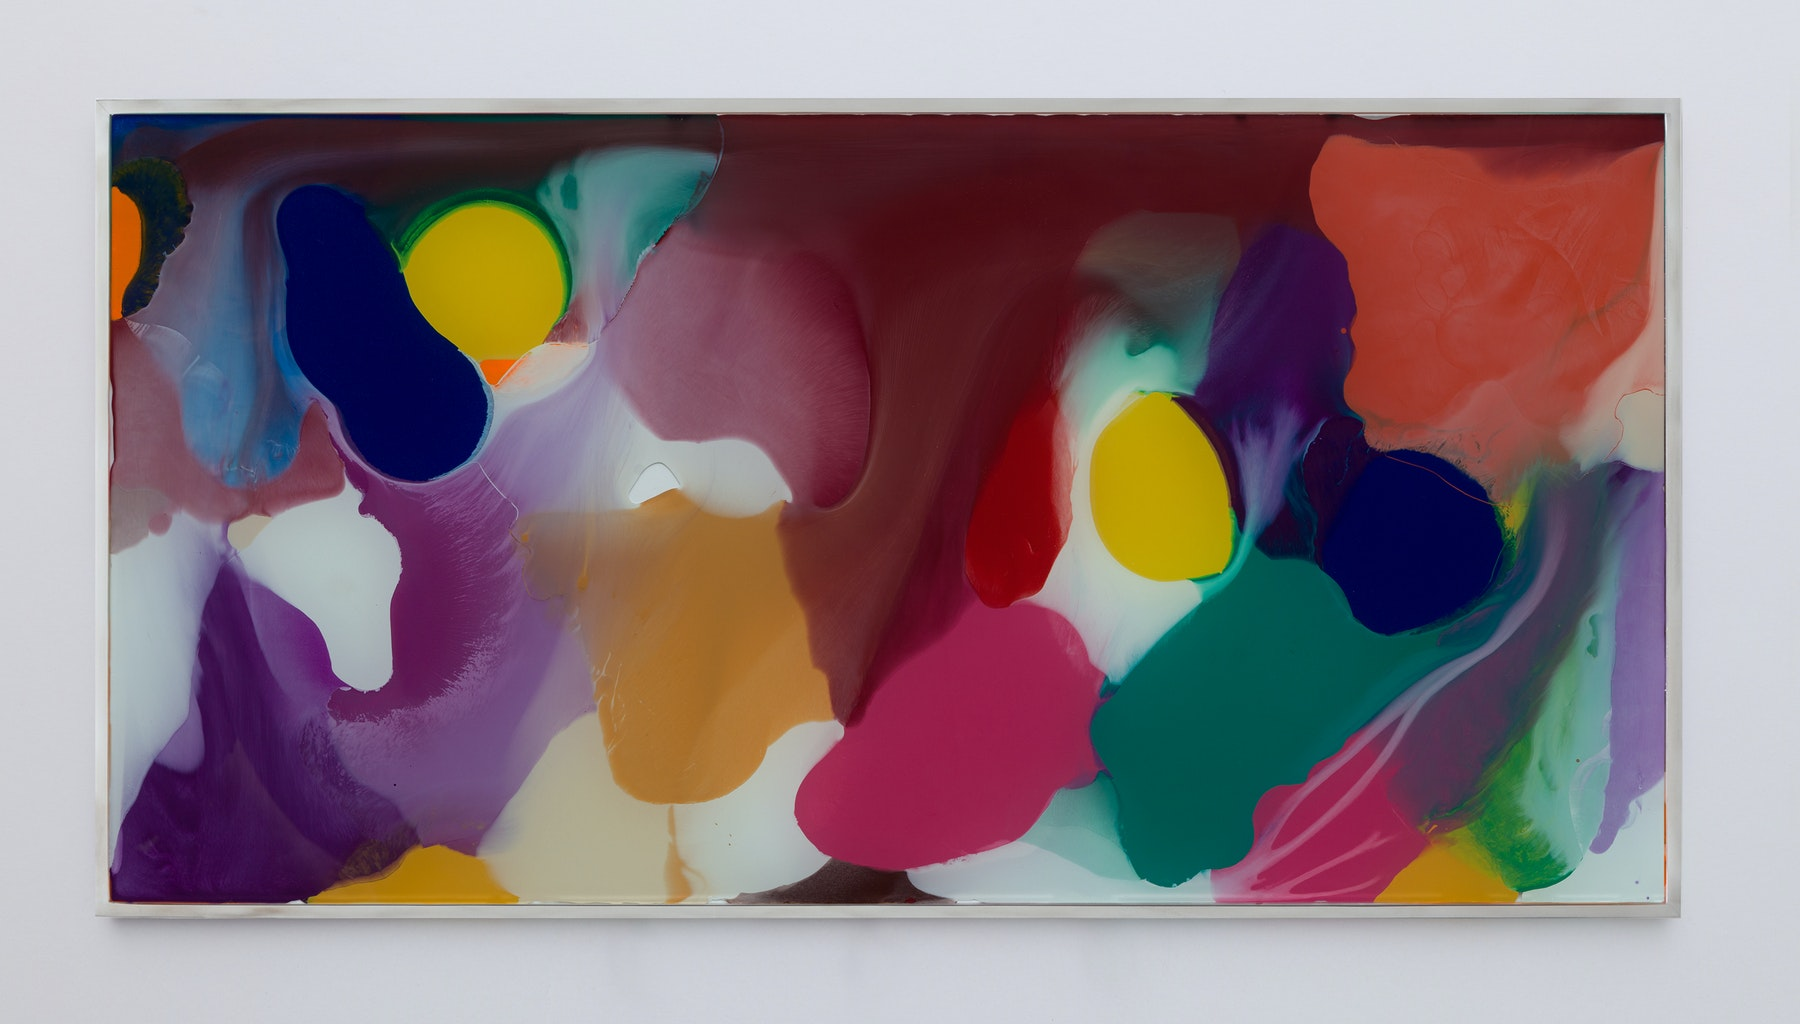 "Yunhee Min ""Up Close in Distance (variation study b3),"" 2018 Enamel on laminated glass 18.5 x 36.5"" [HxW] (46.99 x 92.71 cm) Inventory #MIN338 Courtesy of the artist and Vielmetter Los Angeles Photo credit: Brica Wilcox"